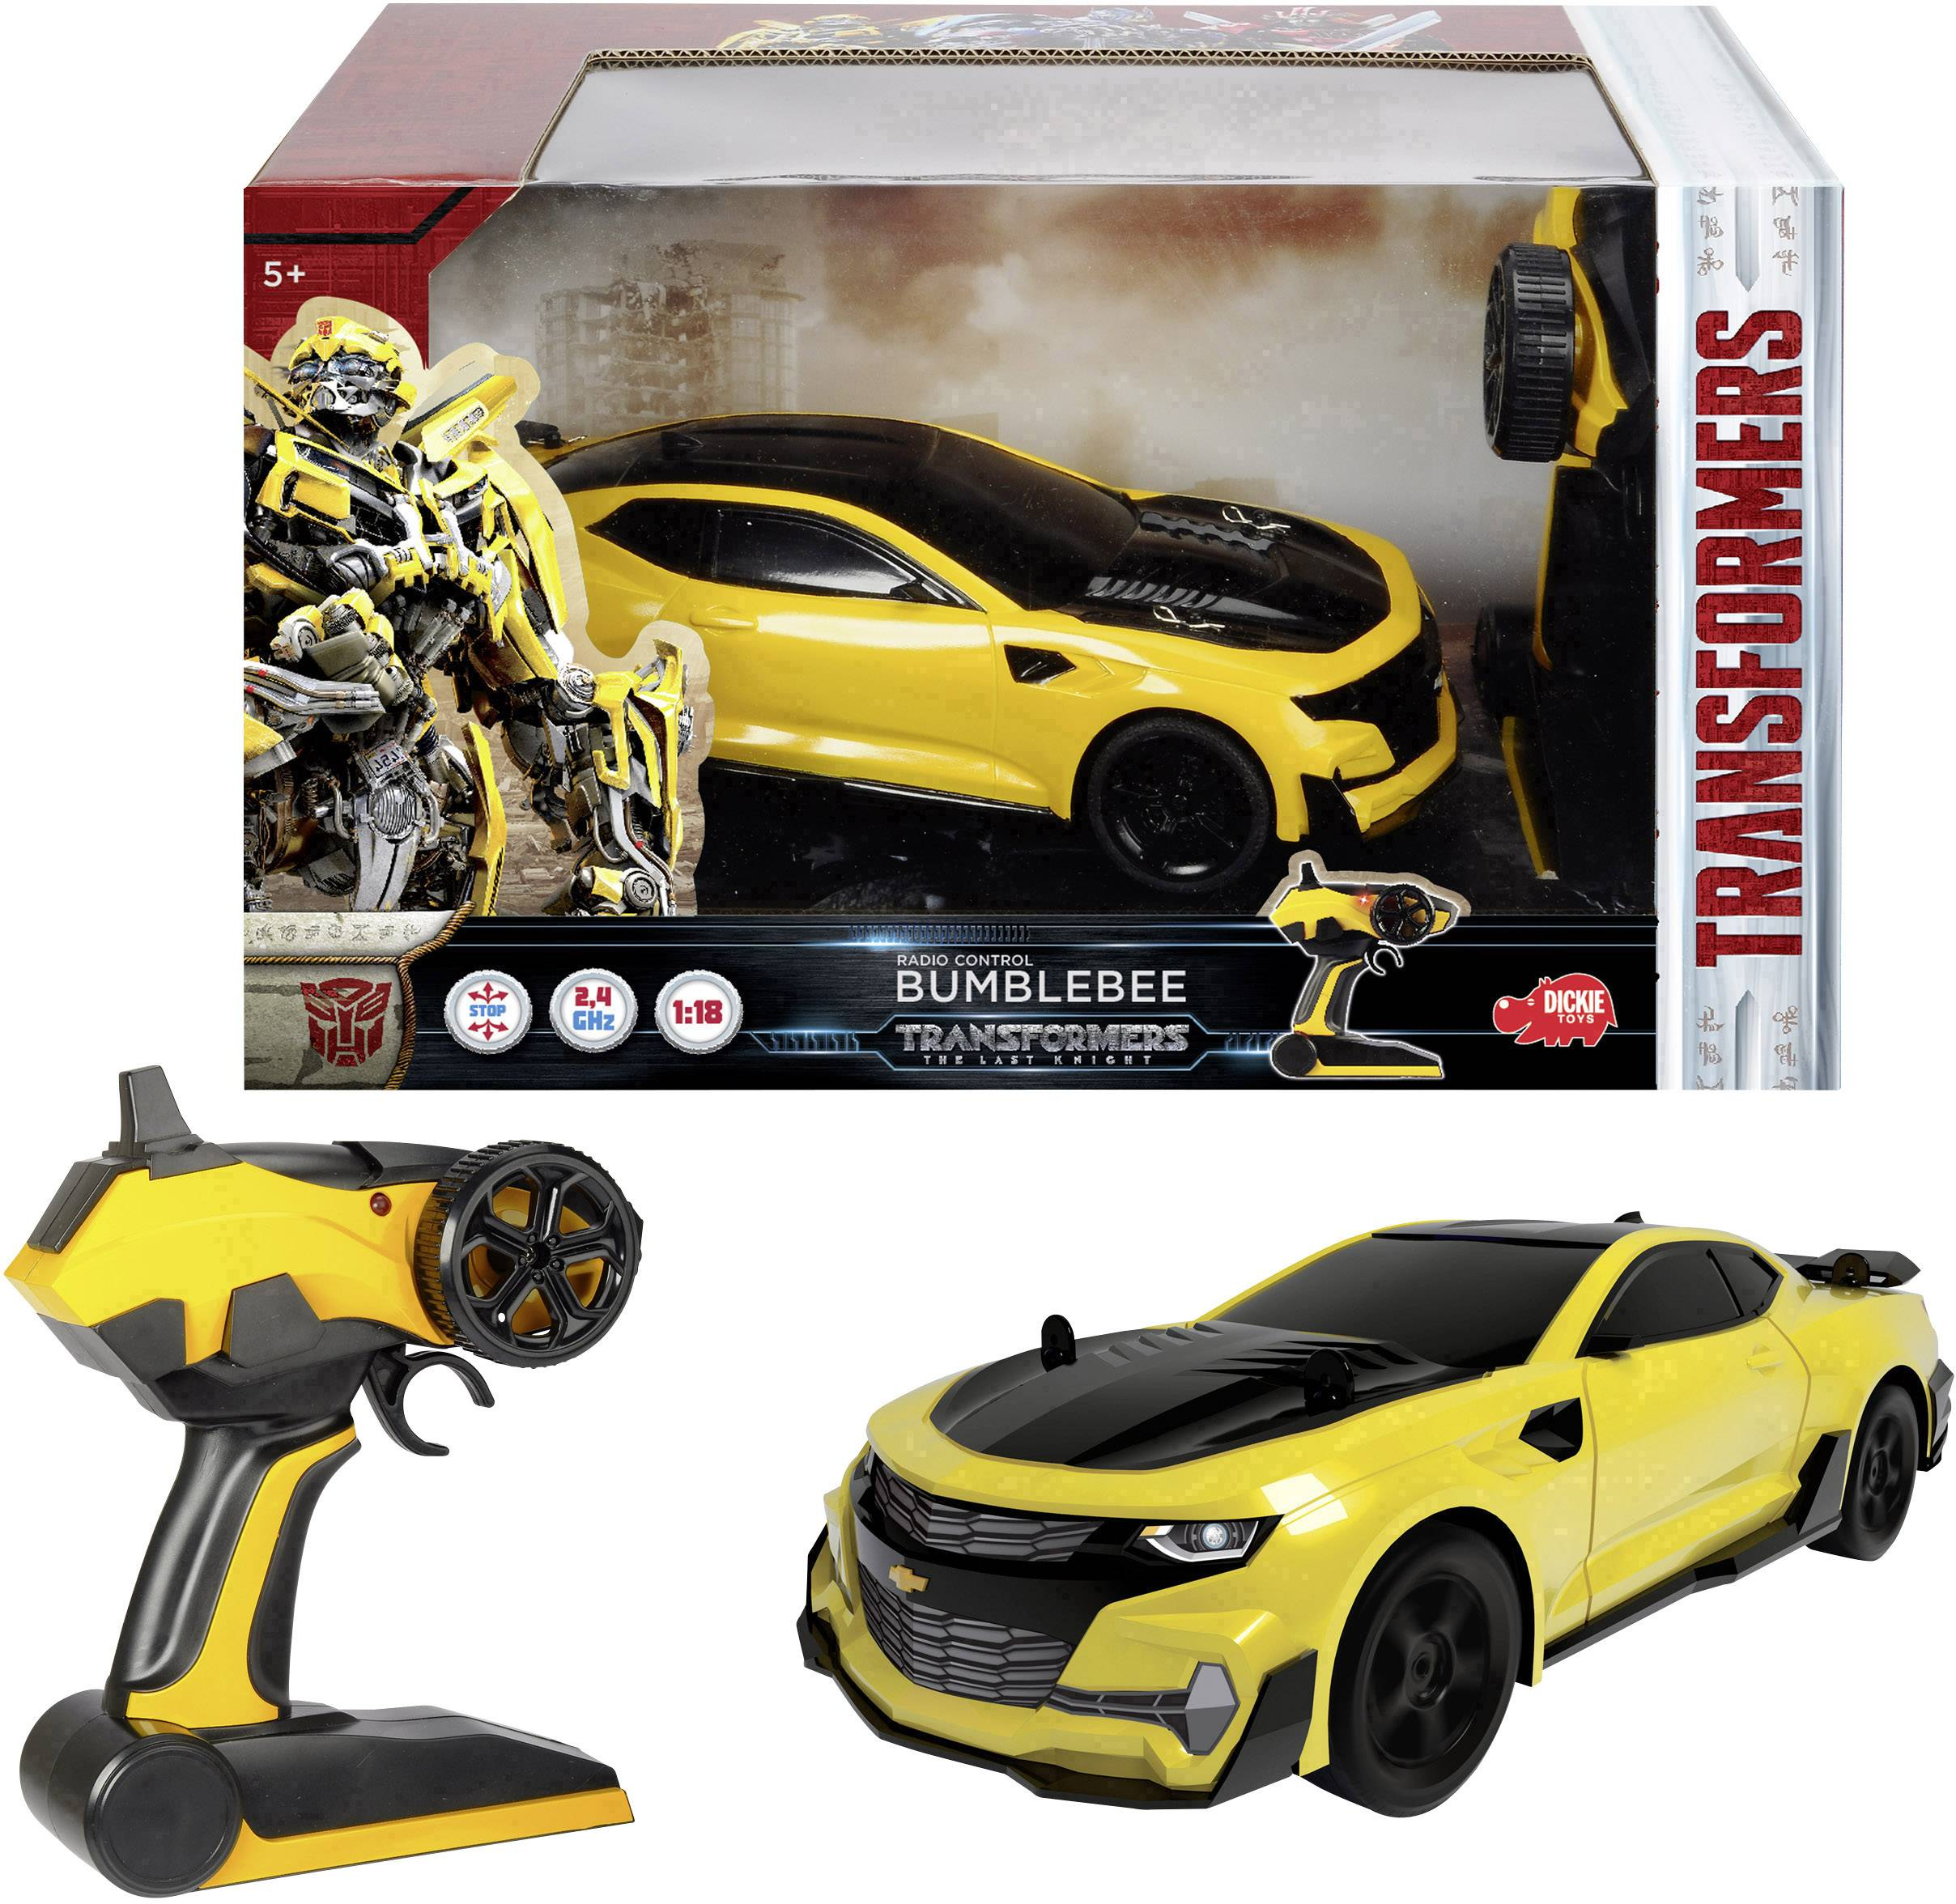 RC model auta cestný model Dickie Toys RC Transformers Bumblebee 203117001, 1:18